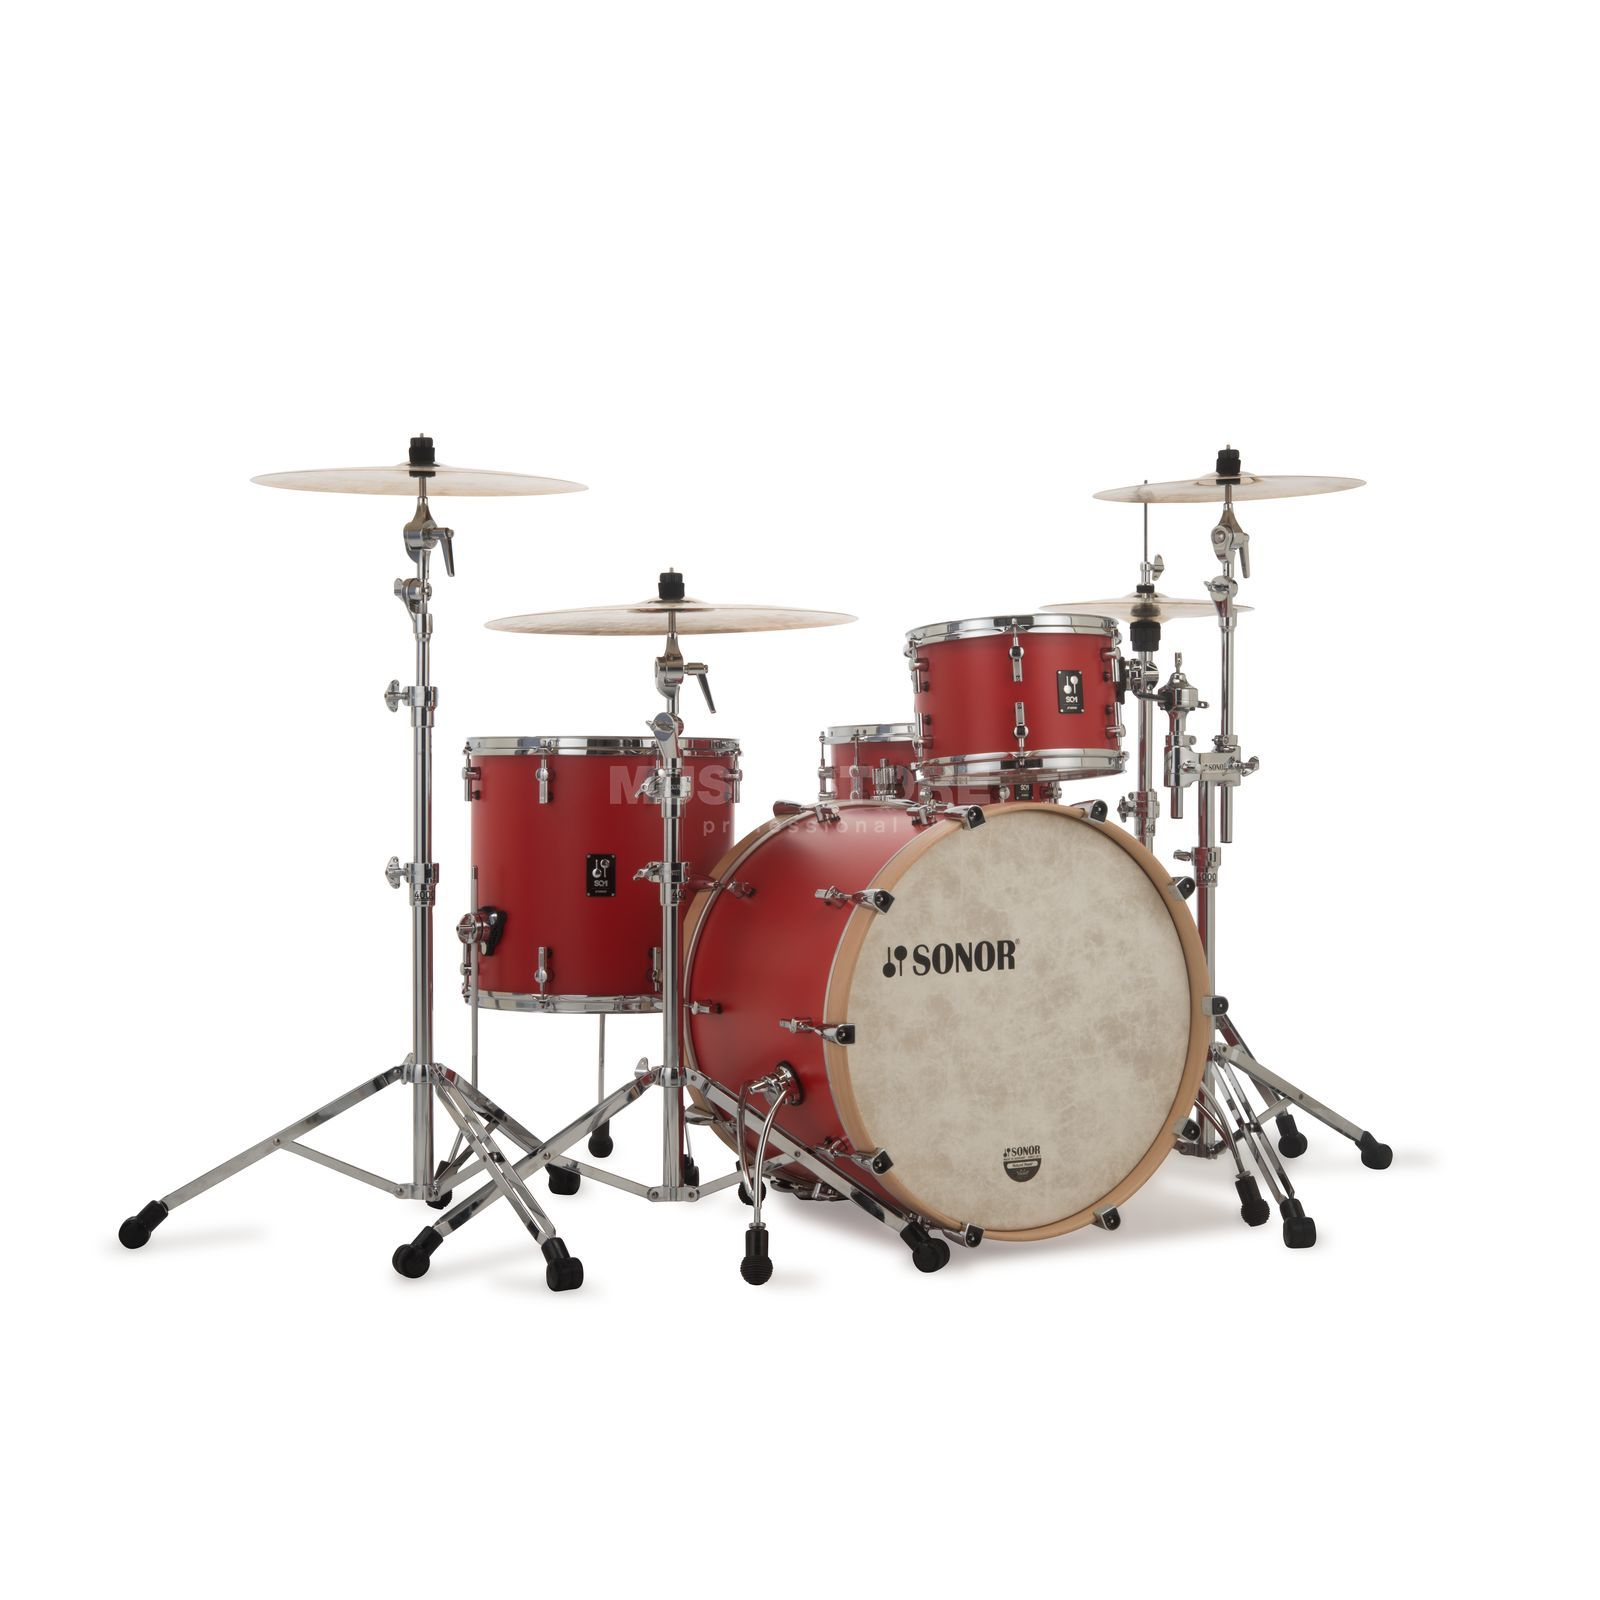 Sonor SQ1 320 Shell Set Hot Rod Red #HRR Imagem do produto